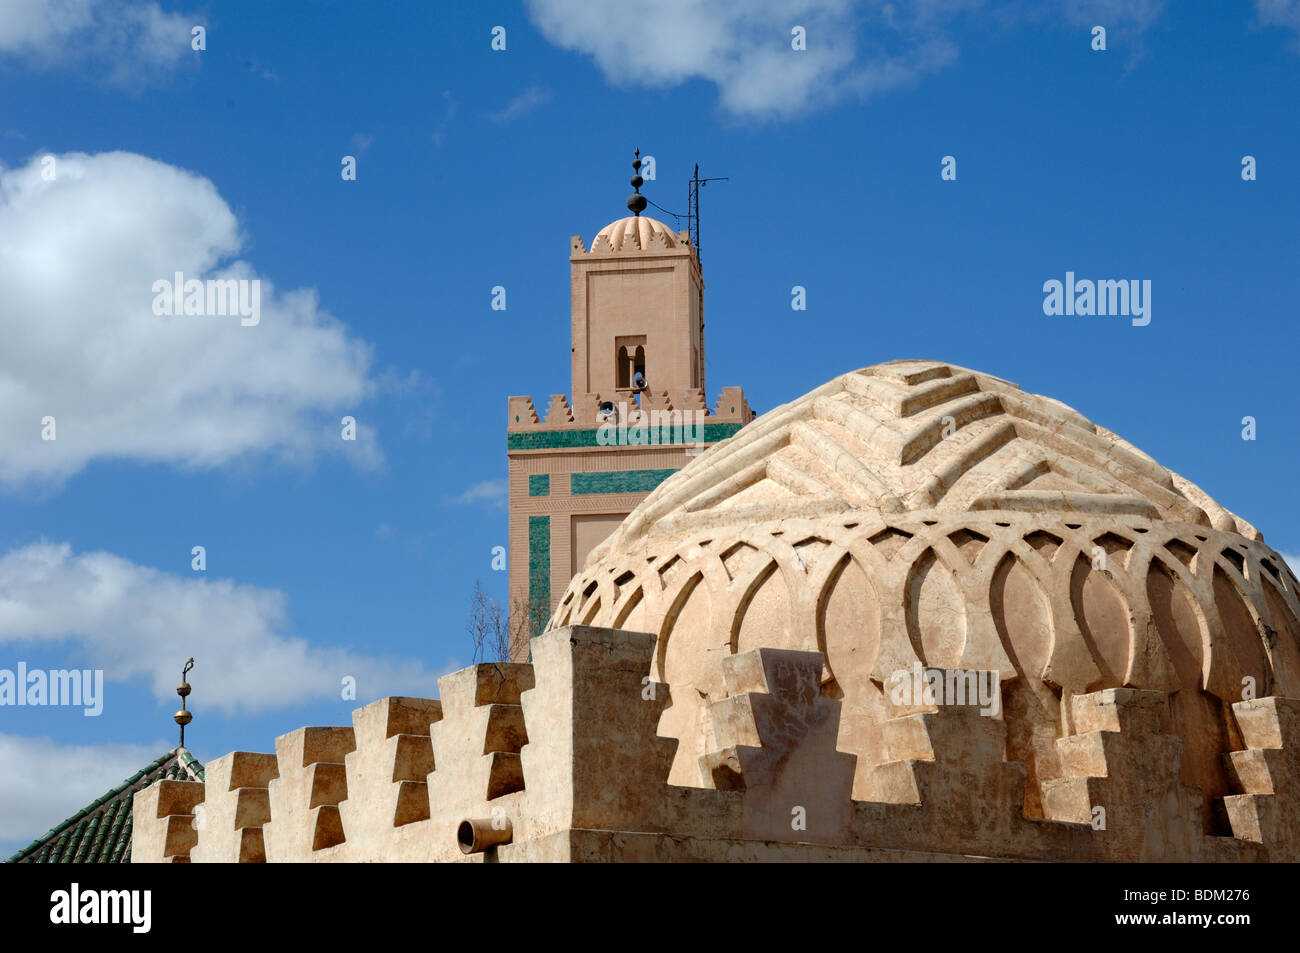 Dome or Cupola of the Koubba Ba'adiyn Almoravid Ablutions Fountain (c12th)& Ali Ben Youssef Minaret & - Stock Image